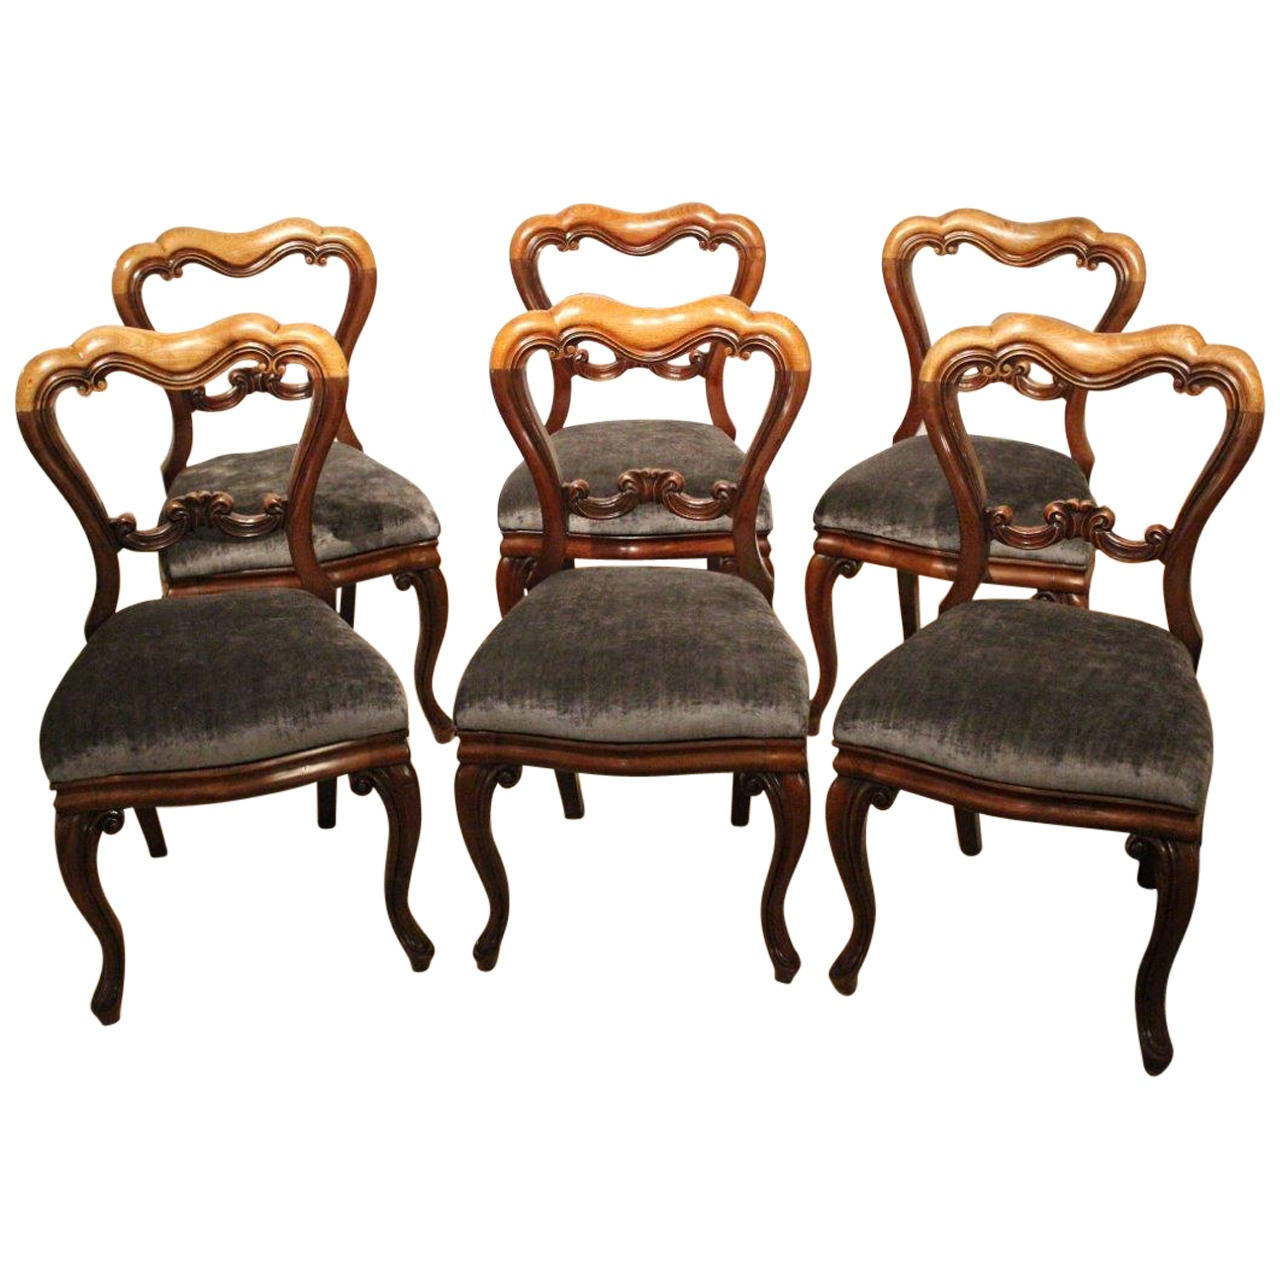 Antique victorian dining chairs - Set Of Six Mahogany Victorian Period Antique Dining Chairs 1